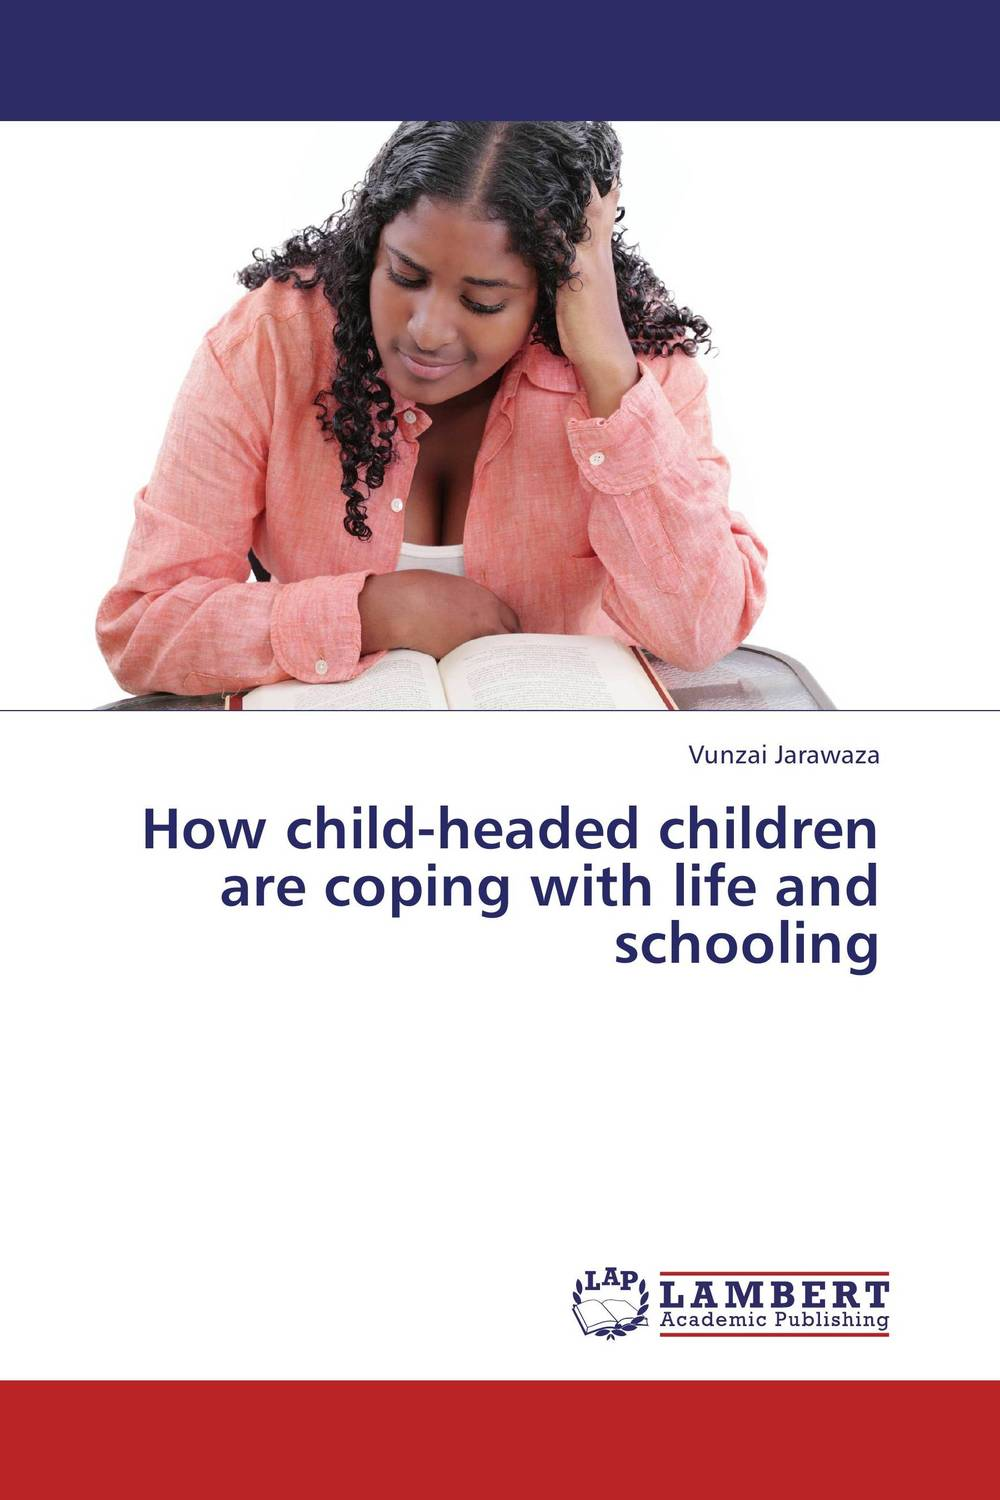 How child-headed children are coping with life and schooling education of vulnerable children